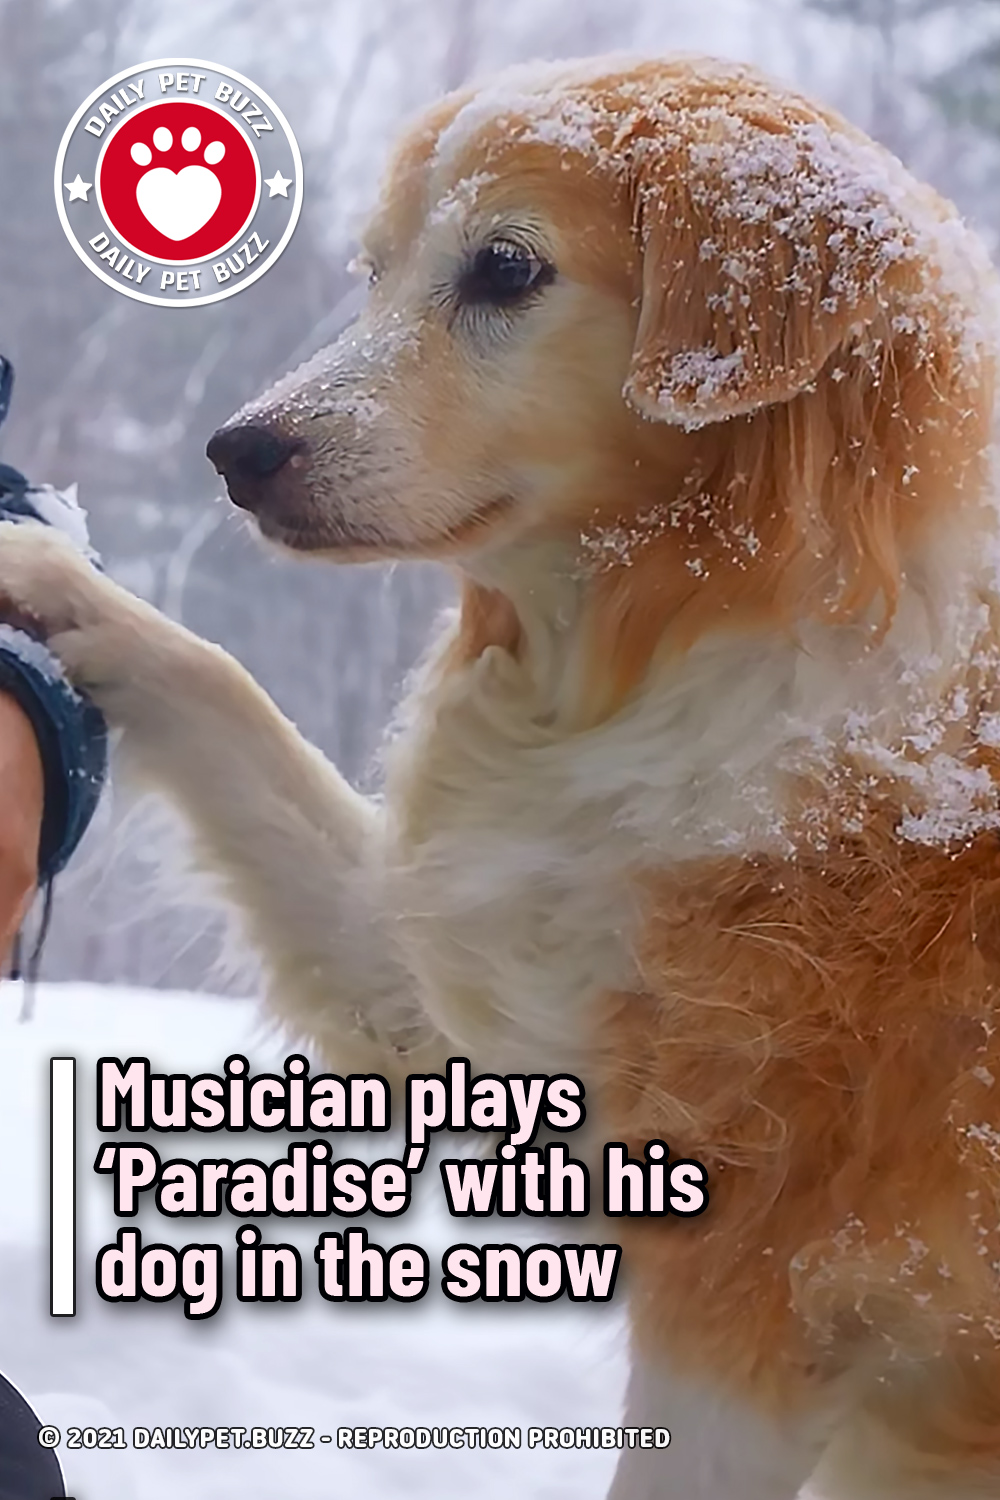 Musician plays 'Paradise' with his dog in the snow